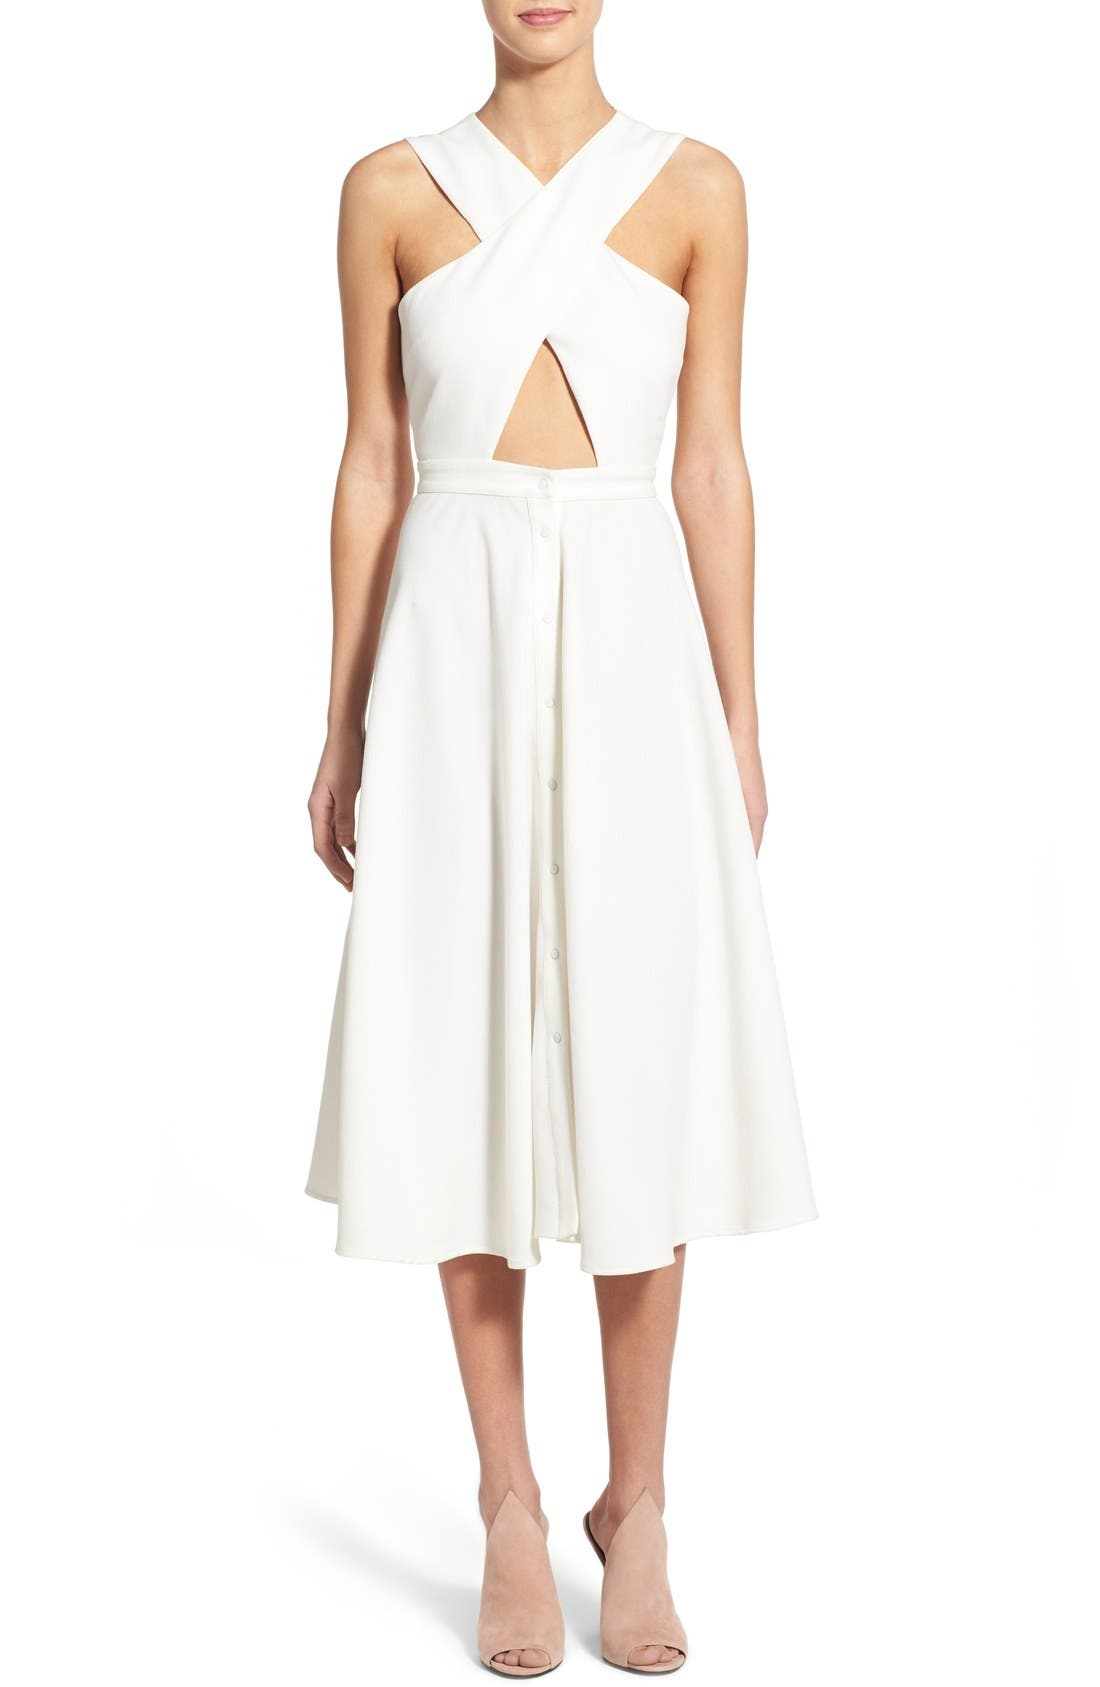 Alternate Image 1 Selected - KENDALL + KYLIE Crossover Bodice Midi Dress